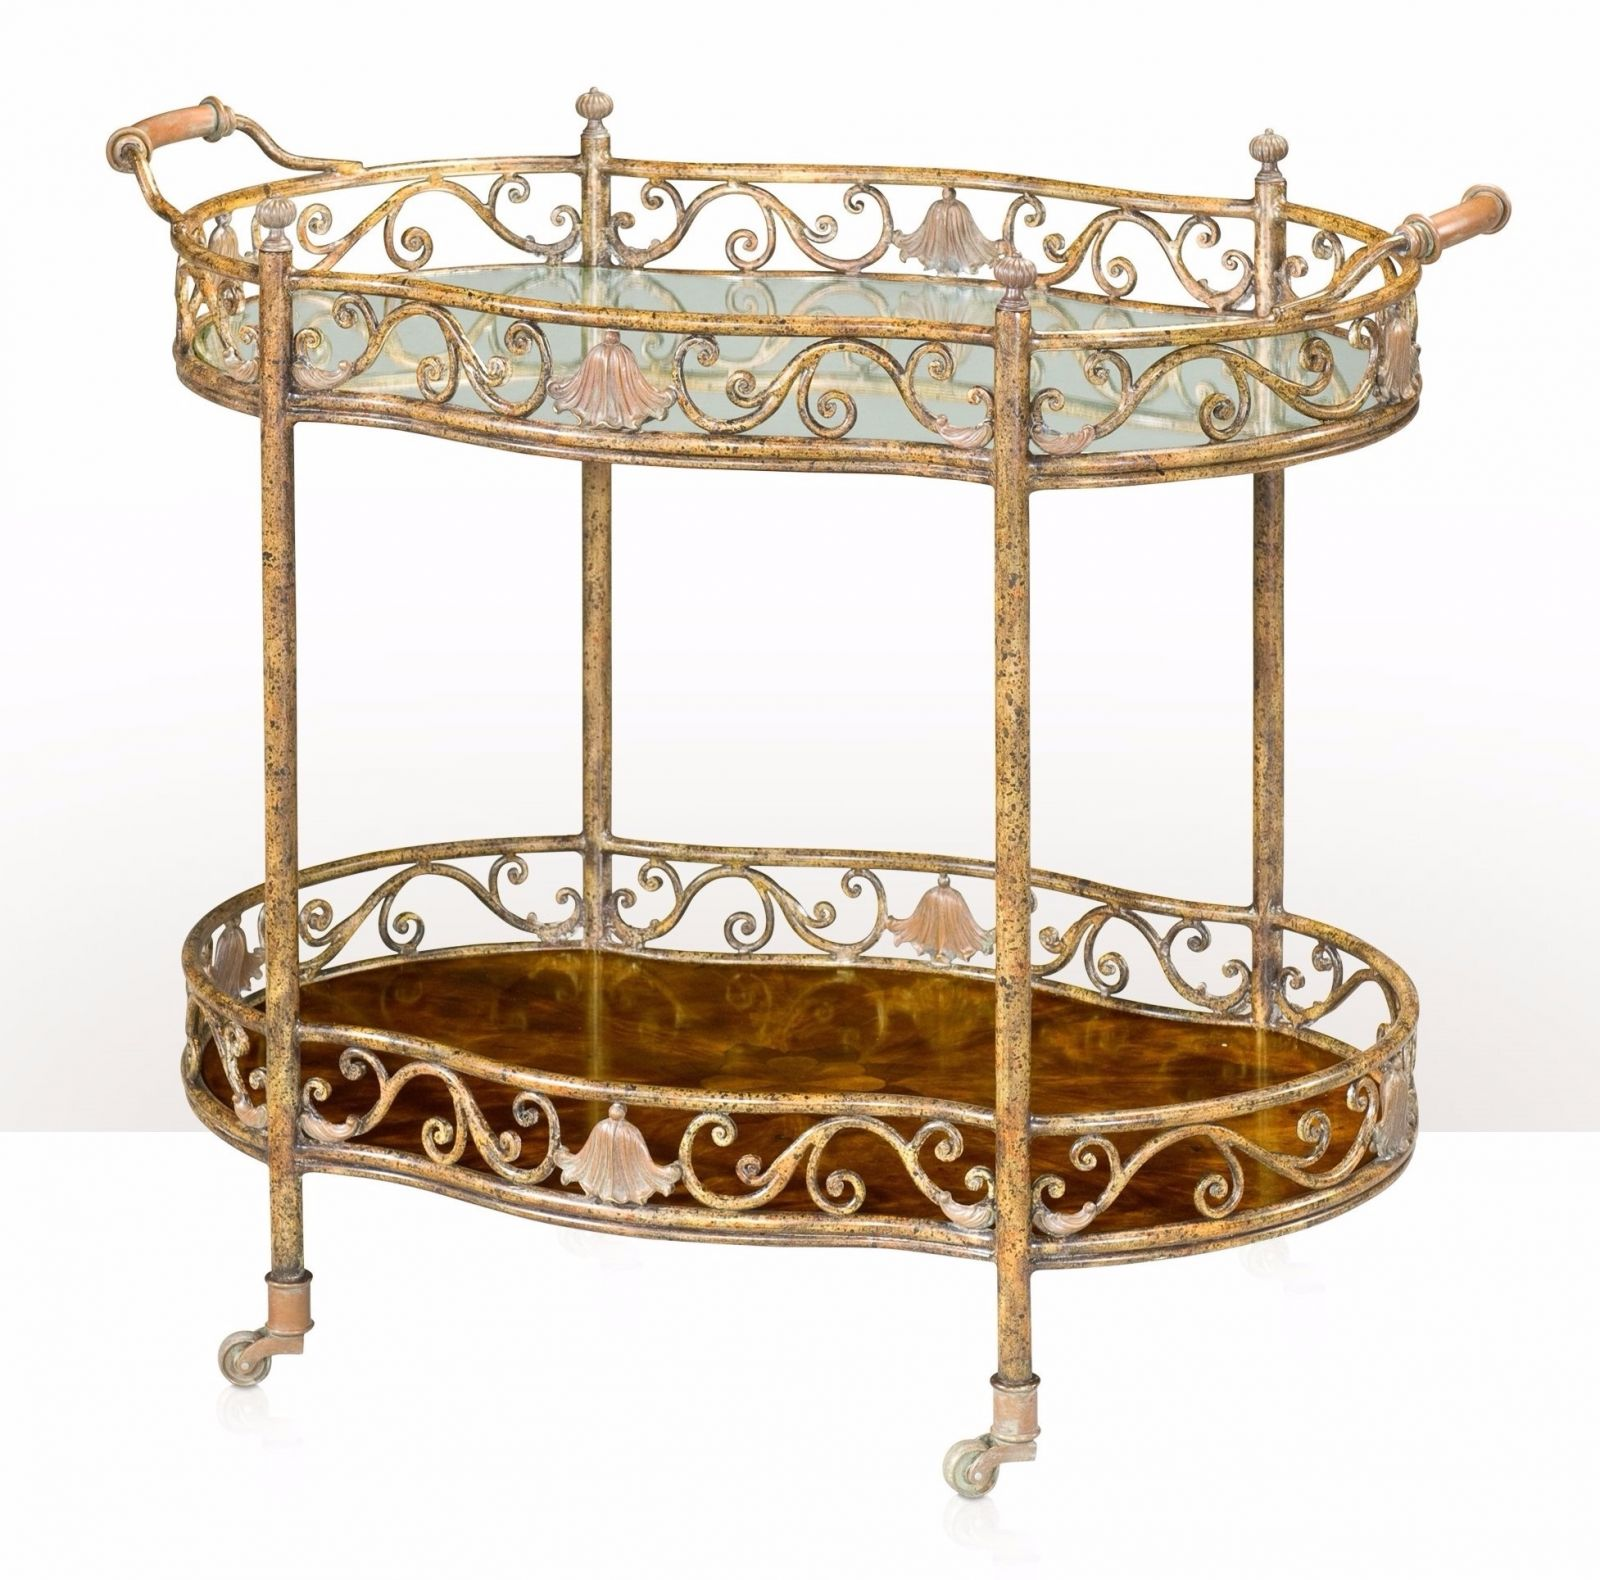 A rustic gilt iron and antiqued brass mounted tray table